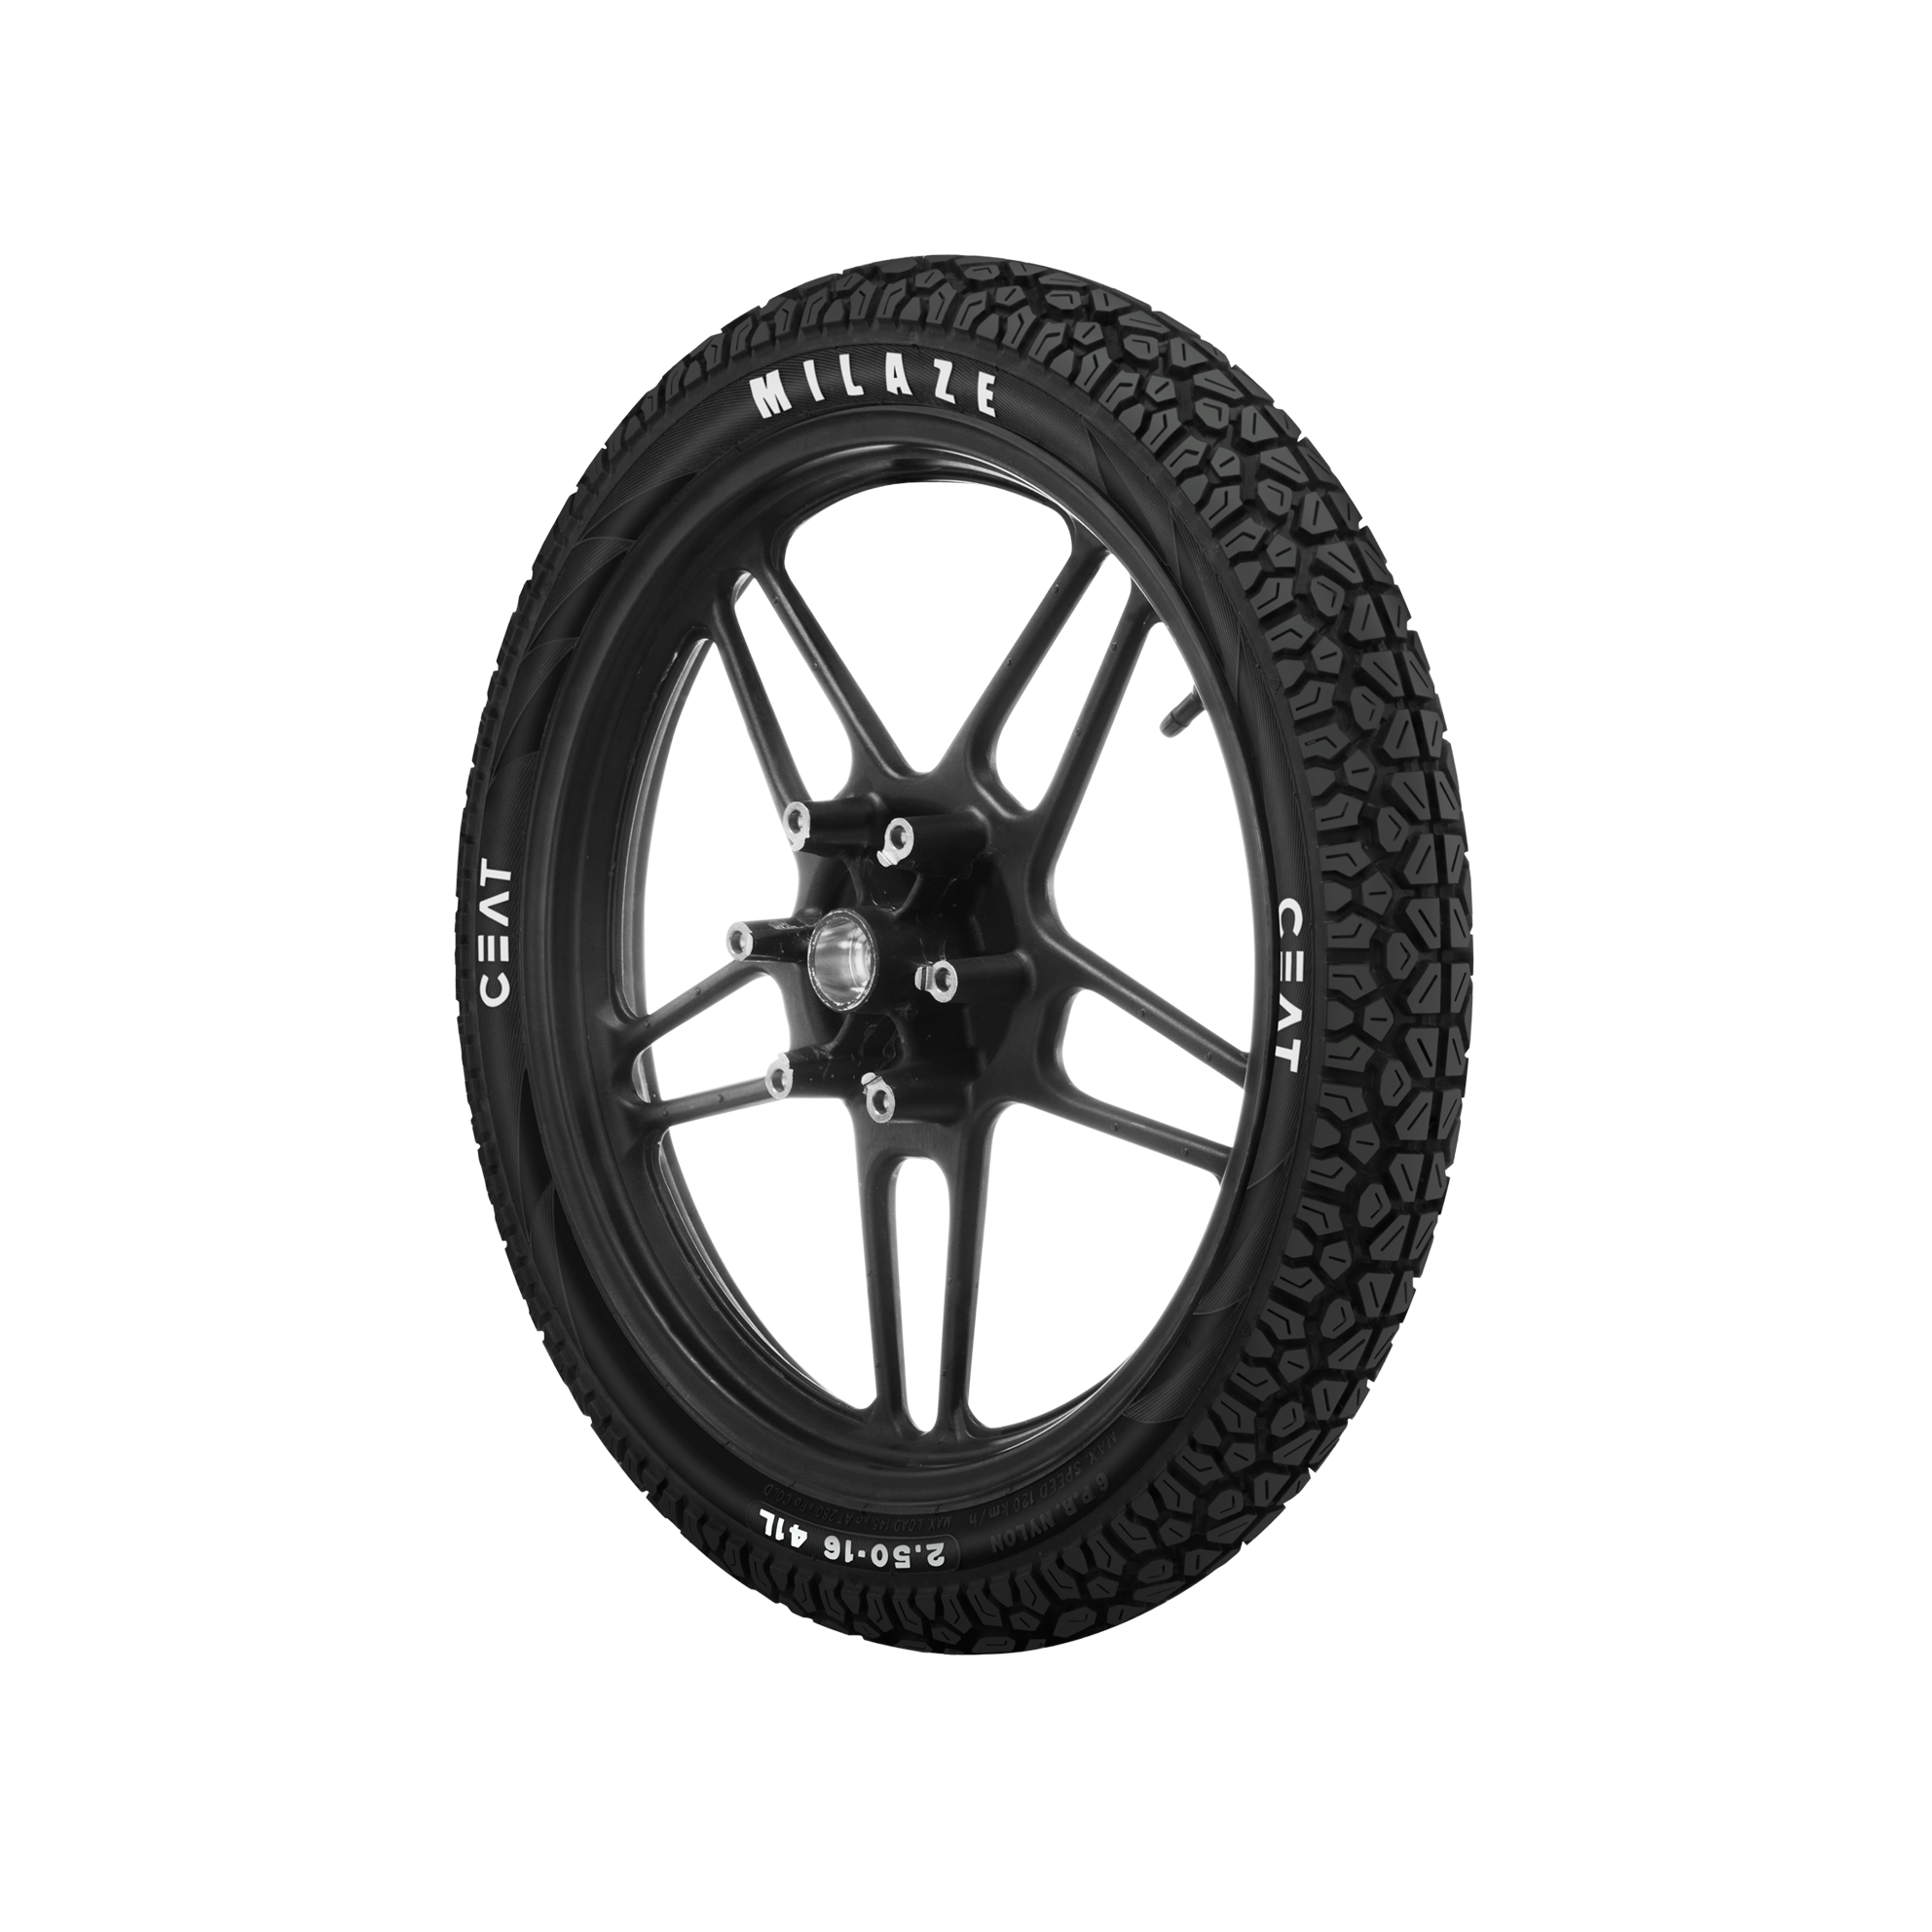 Ceat MILAZE 2.75 R 18 Tubeless   Rear Two-Wheeler Tyre